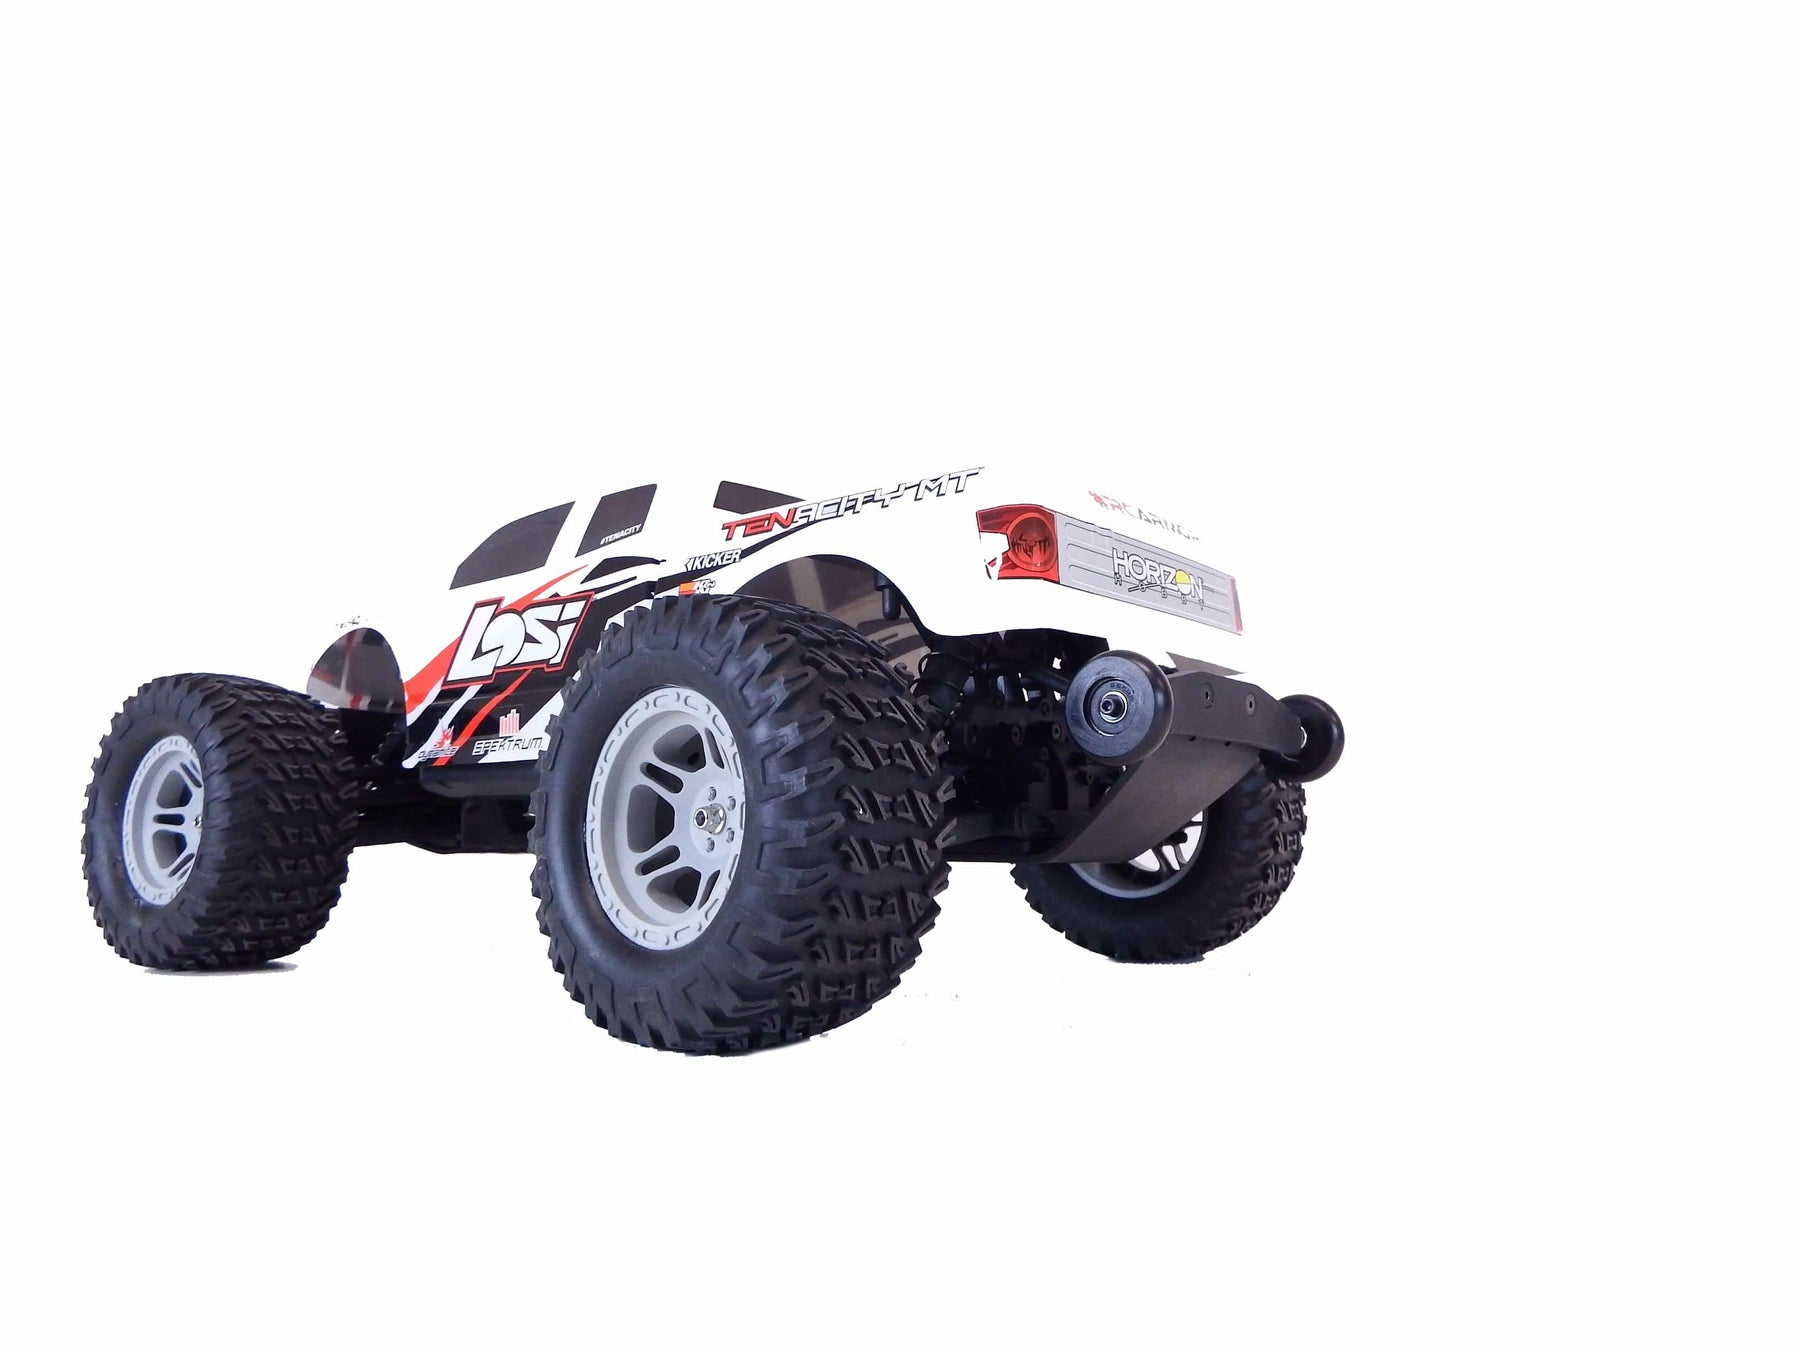 37217 - TBR Rear Bumper & Wheelie Bar Set - Losi TENACITY MT